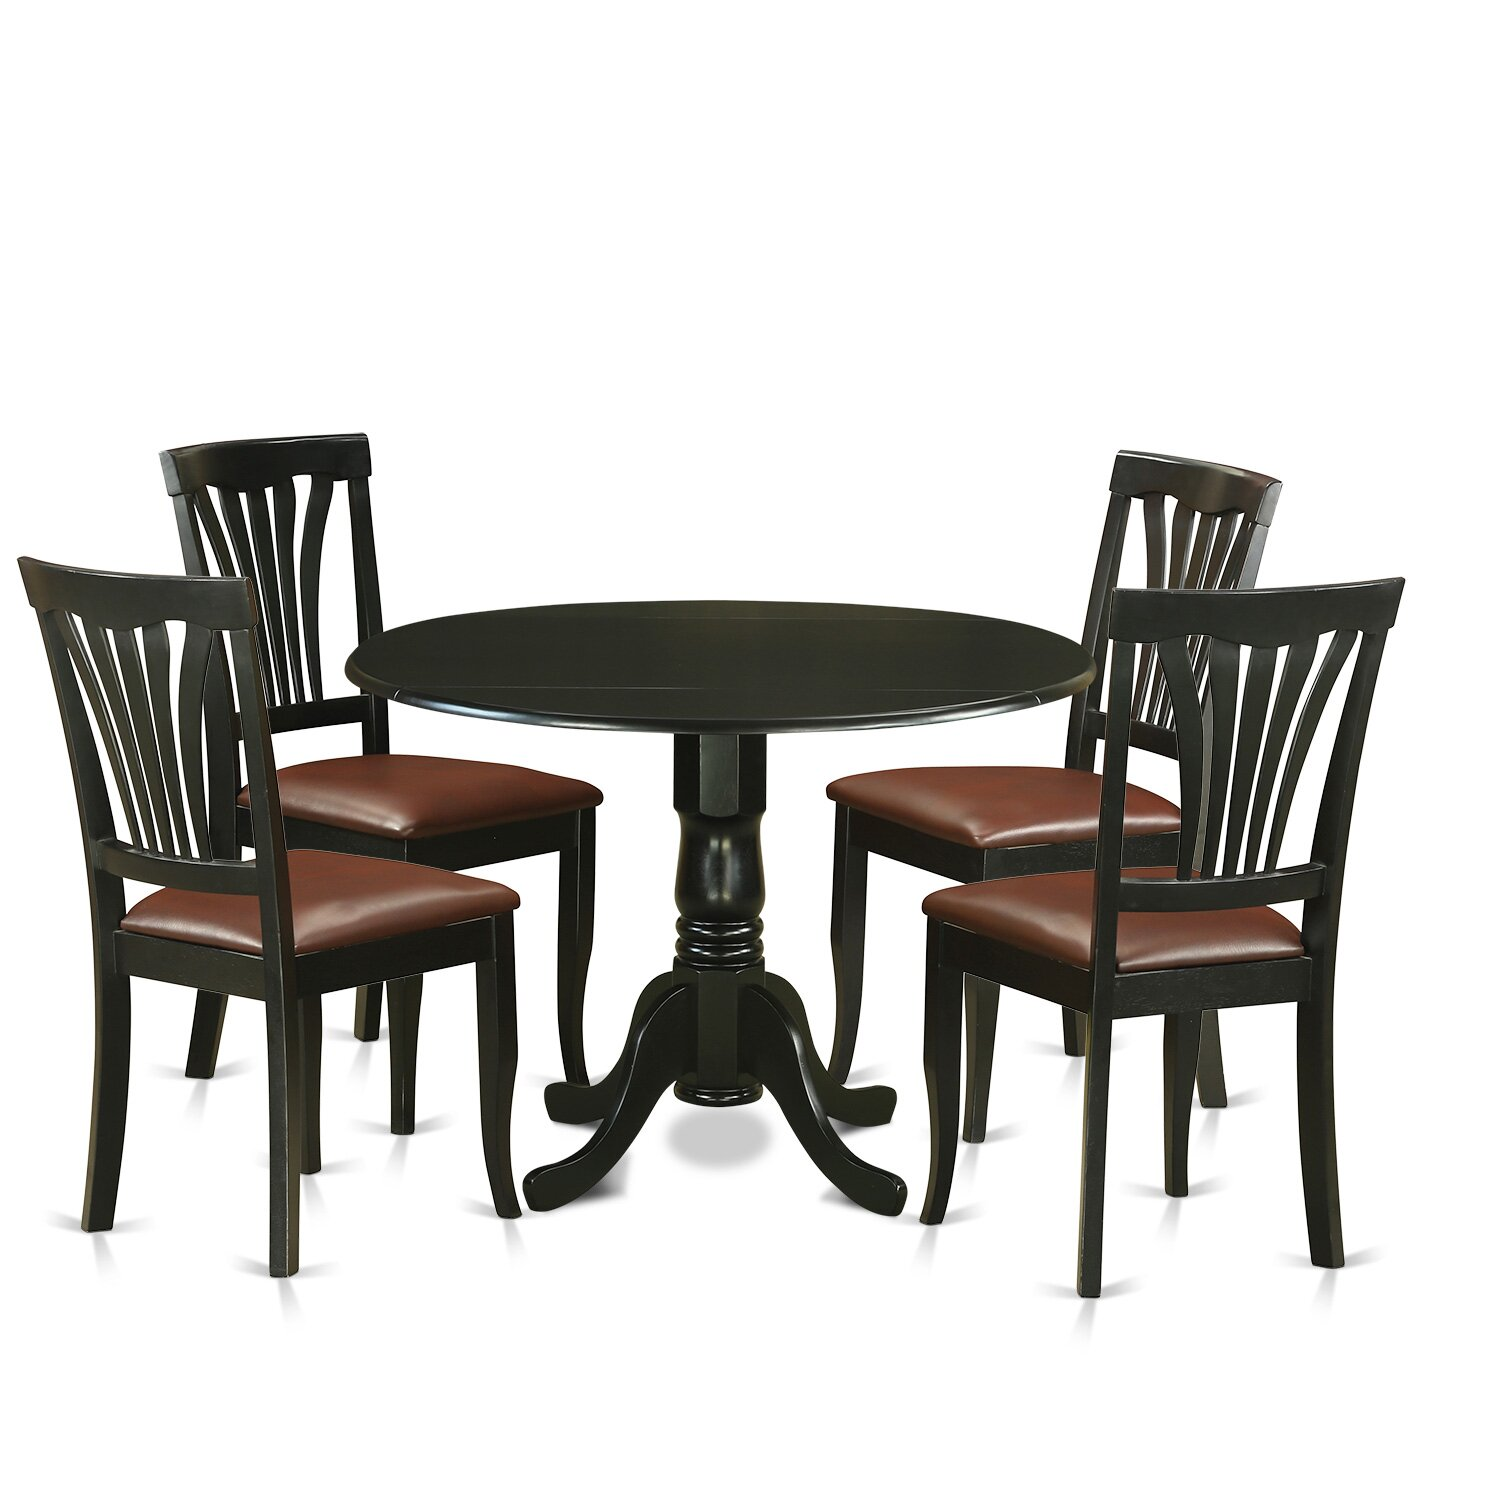 Kitchen Table And Chairs Dublin: Wooden Importers Dublin 5 Piece Dining Set